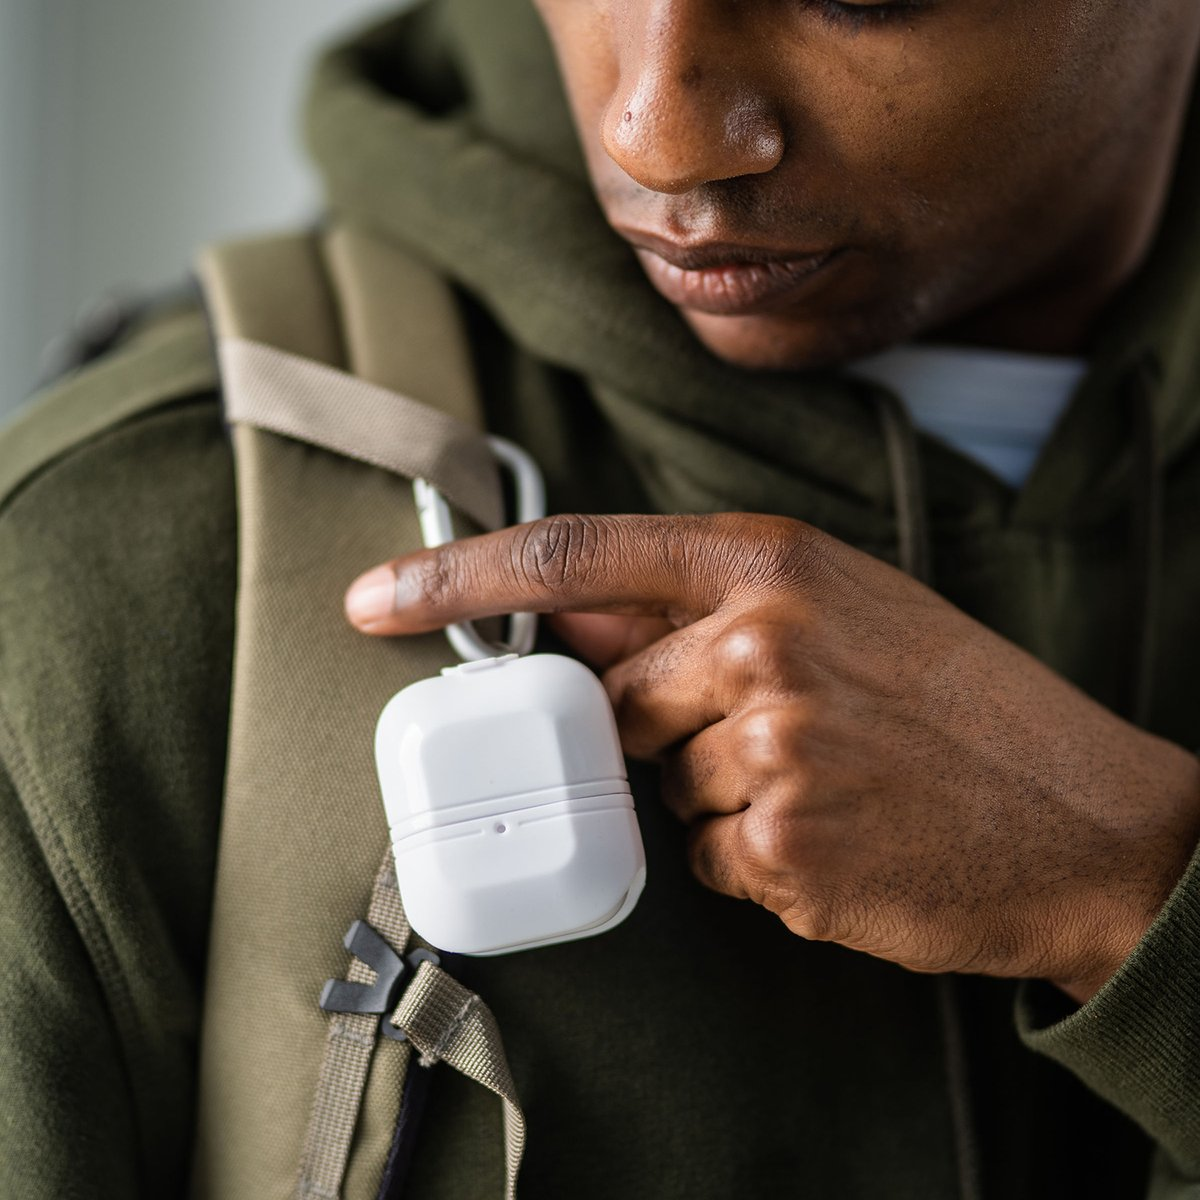 Keep those AirPods handy with Defense Journey 😎  https://t.co/oycYJ9AWck #DefenseJourney https://t.co/NbOemL10vX